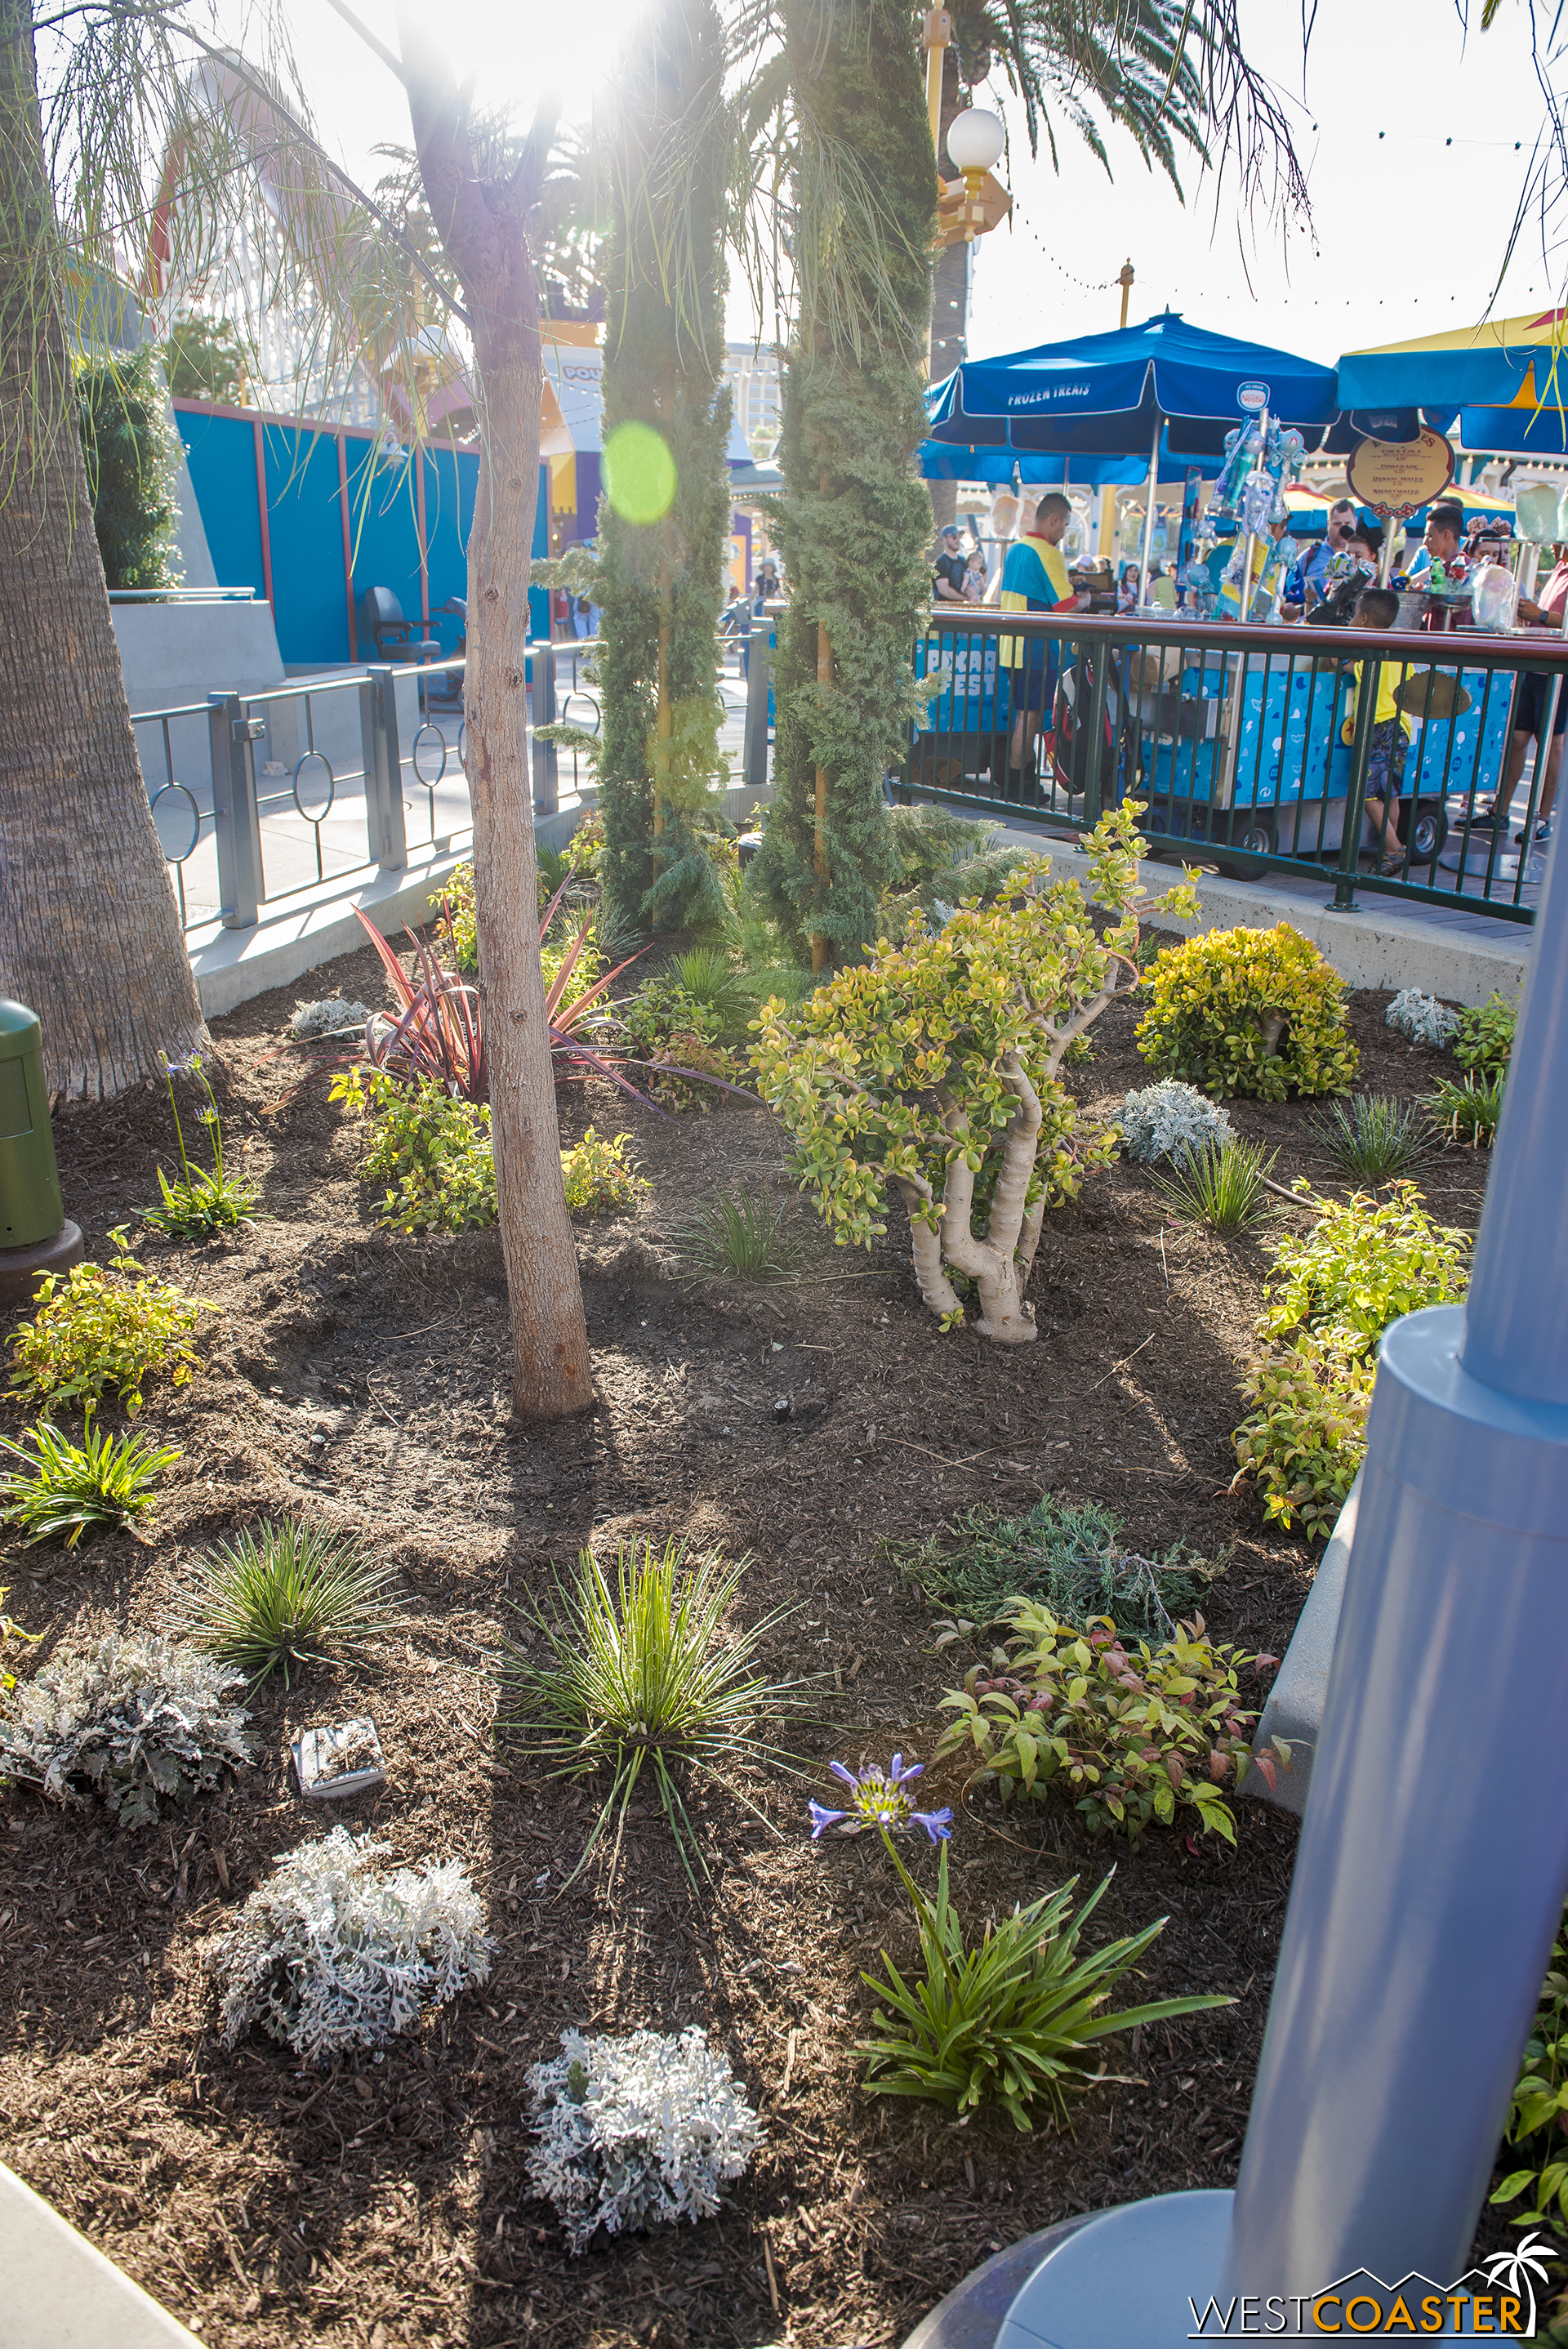 The planters themselves have a lot of drought-tolerant planting, which is useful.